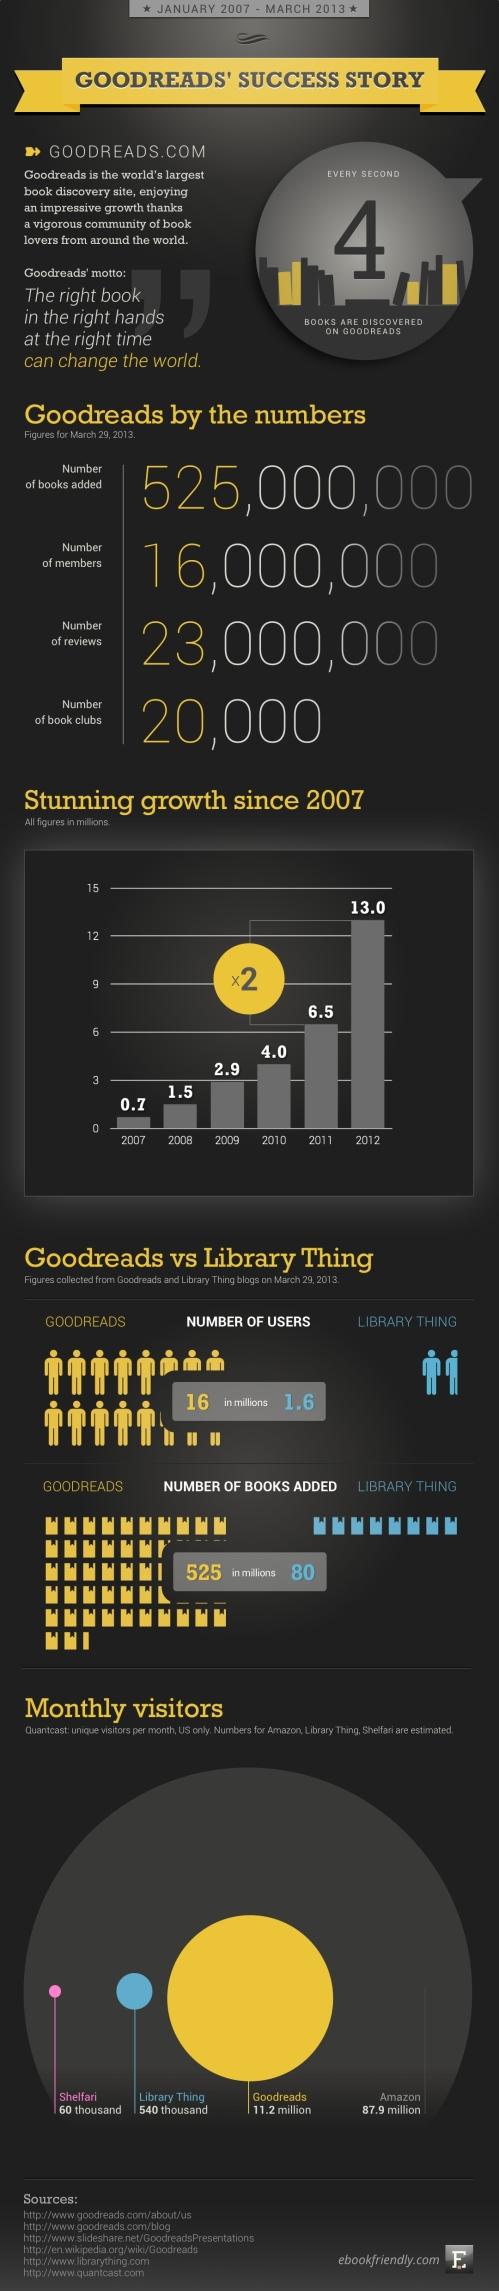 Goodreads-success-story-infographic (1)